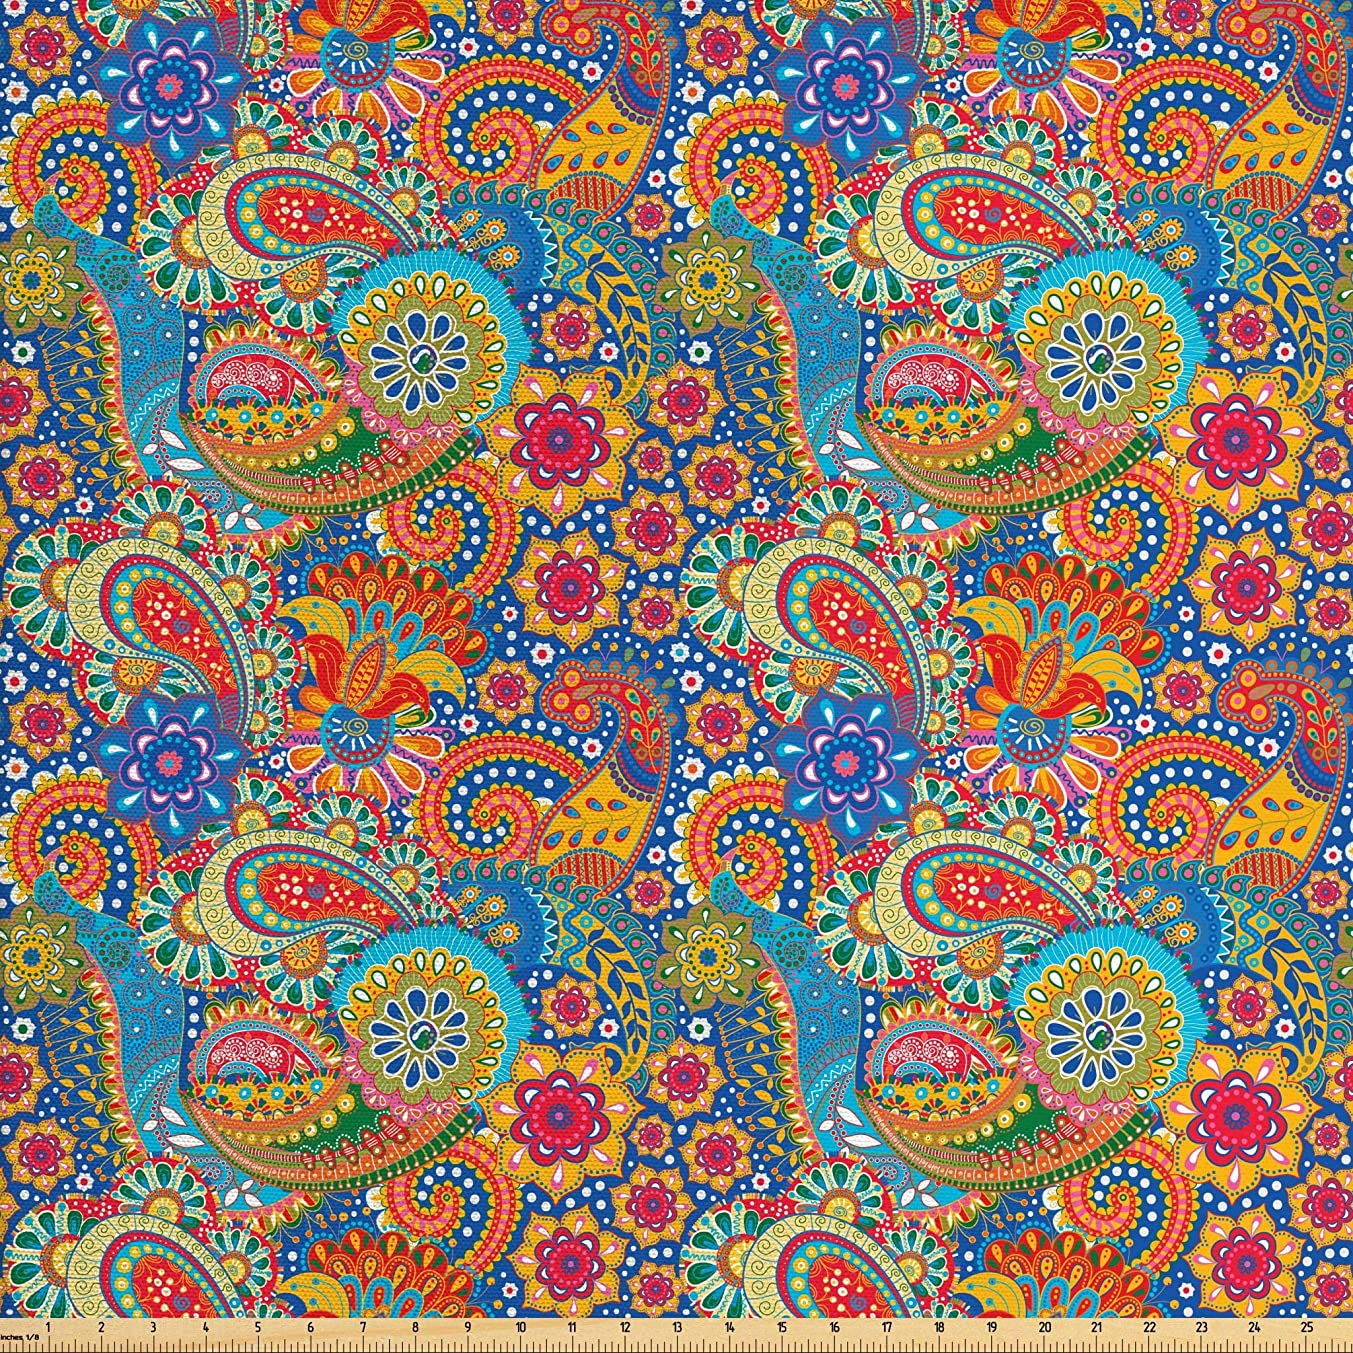 Lunarable Asian Fabric by The Yard, Colorful Paisley Floral Pattern Classical Ornamental Medieval Ancient Ethnic Art, Decorative Fabric for Upholstery and Home Accents, 1 Yard, Multicolor